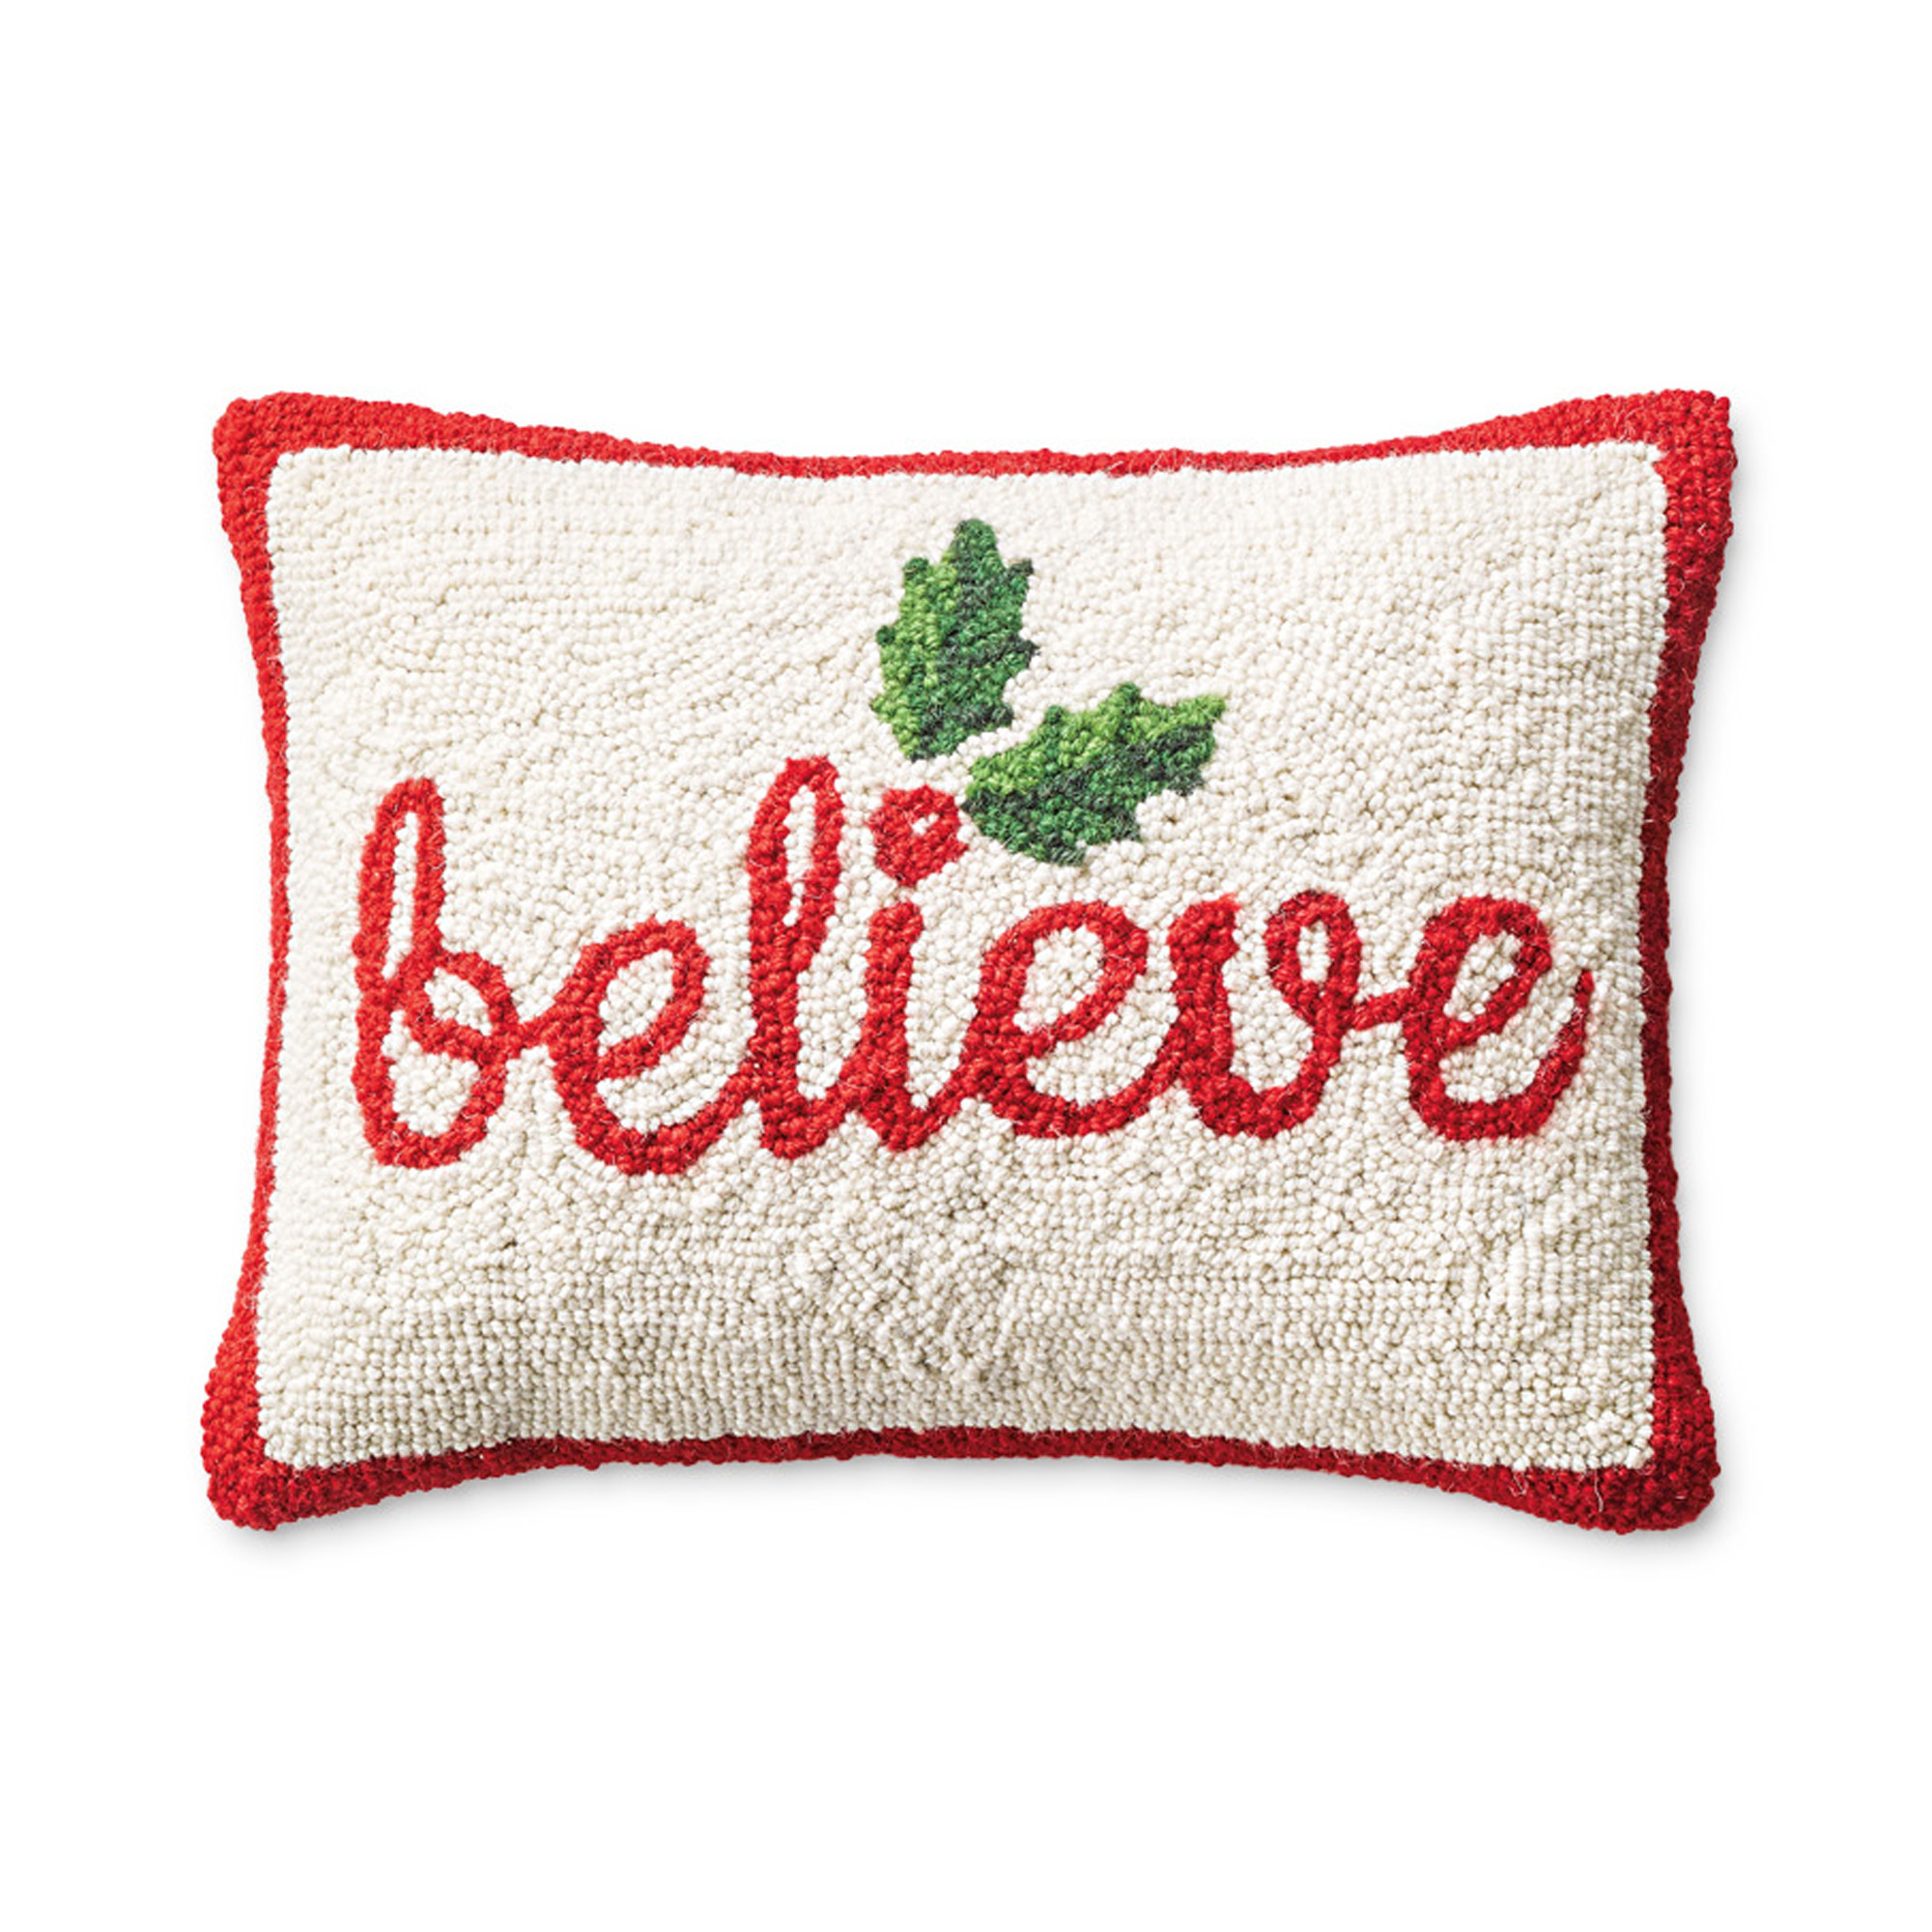 Throw Pillows Home : Pillows Embroidered, Needlepoint, and Decorative Pillows Gump s